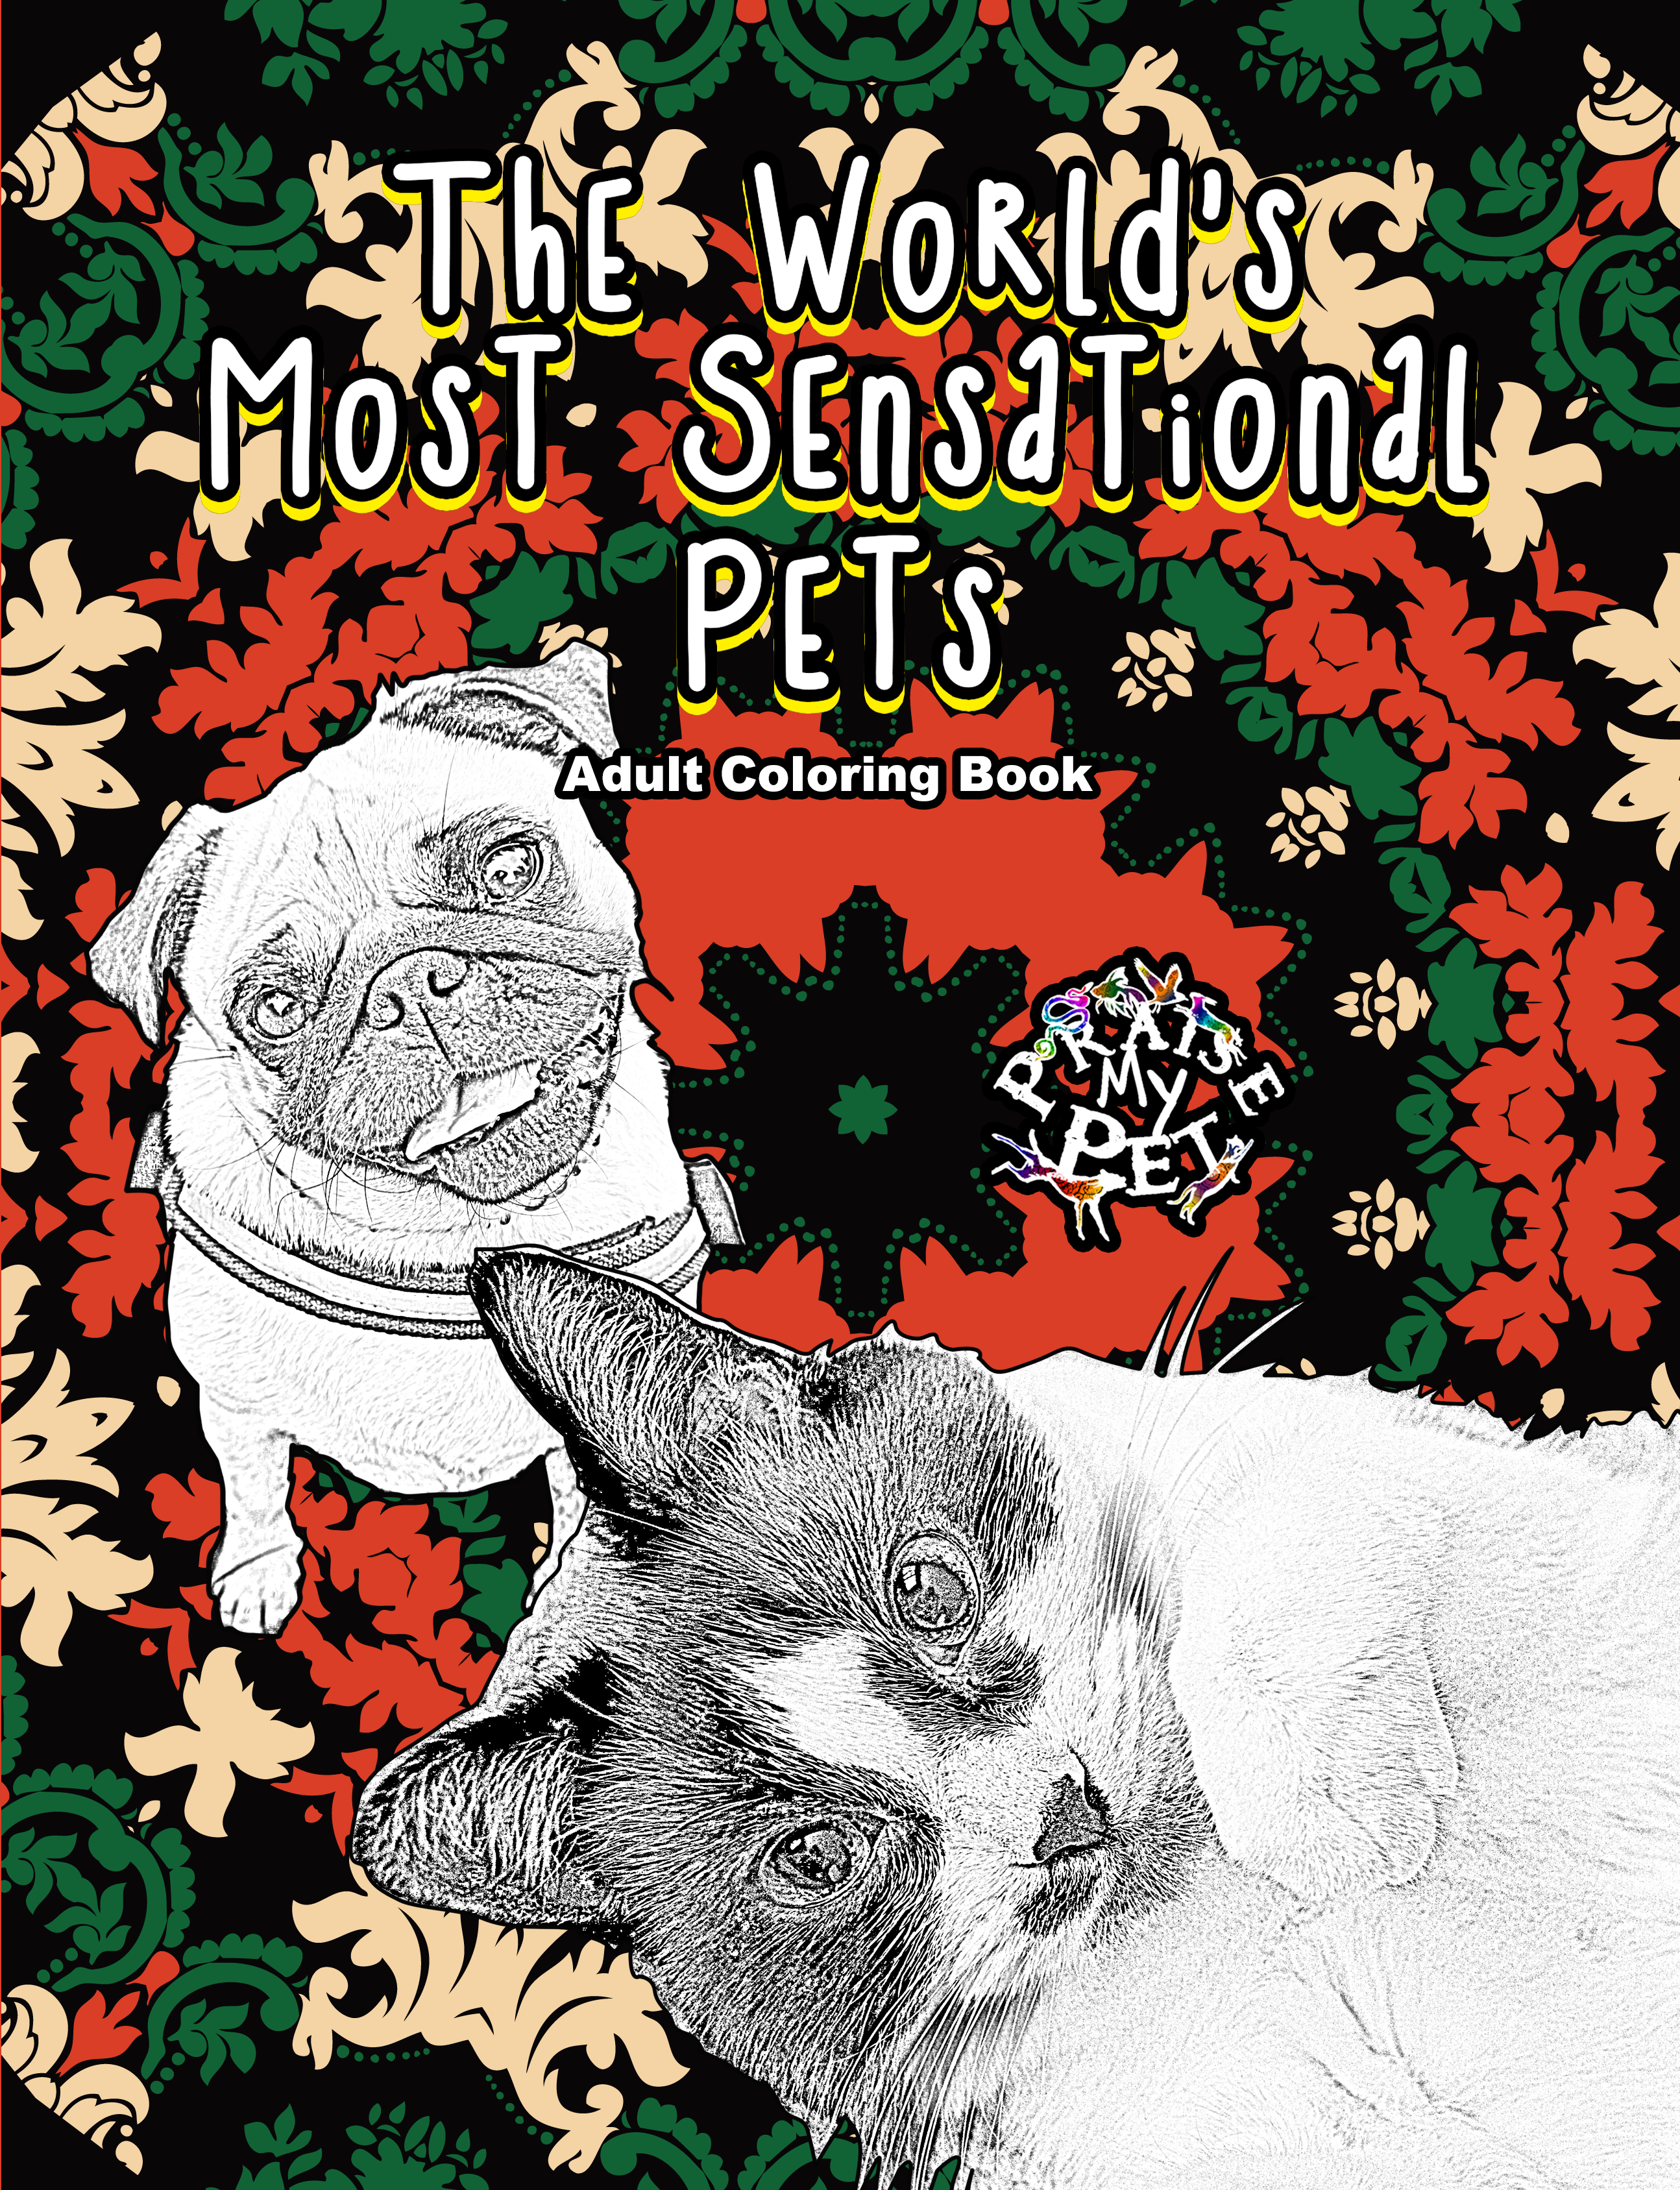 The World's Most Sensational Pets: Adult's Coloring Book